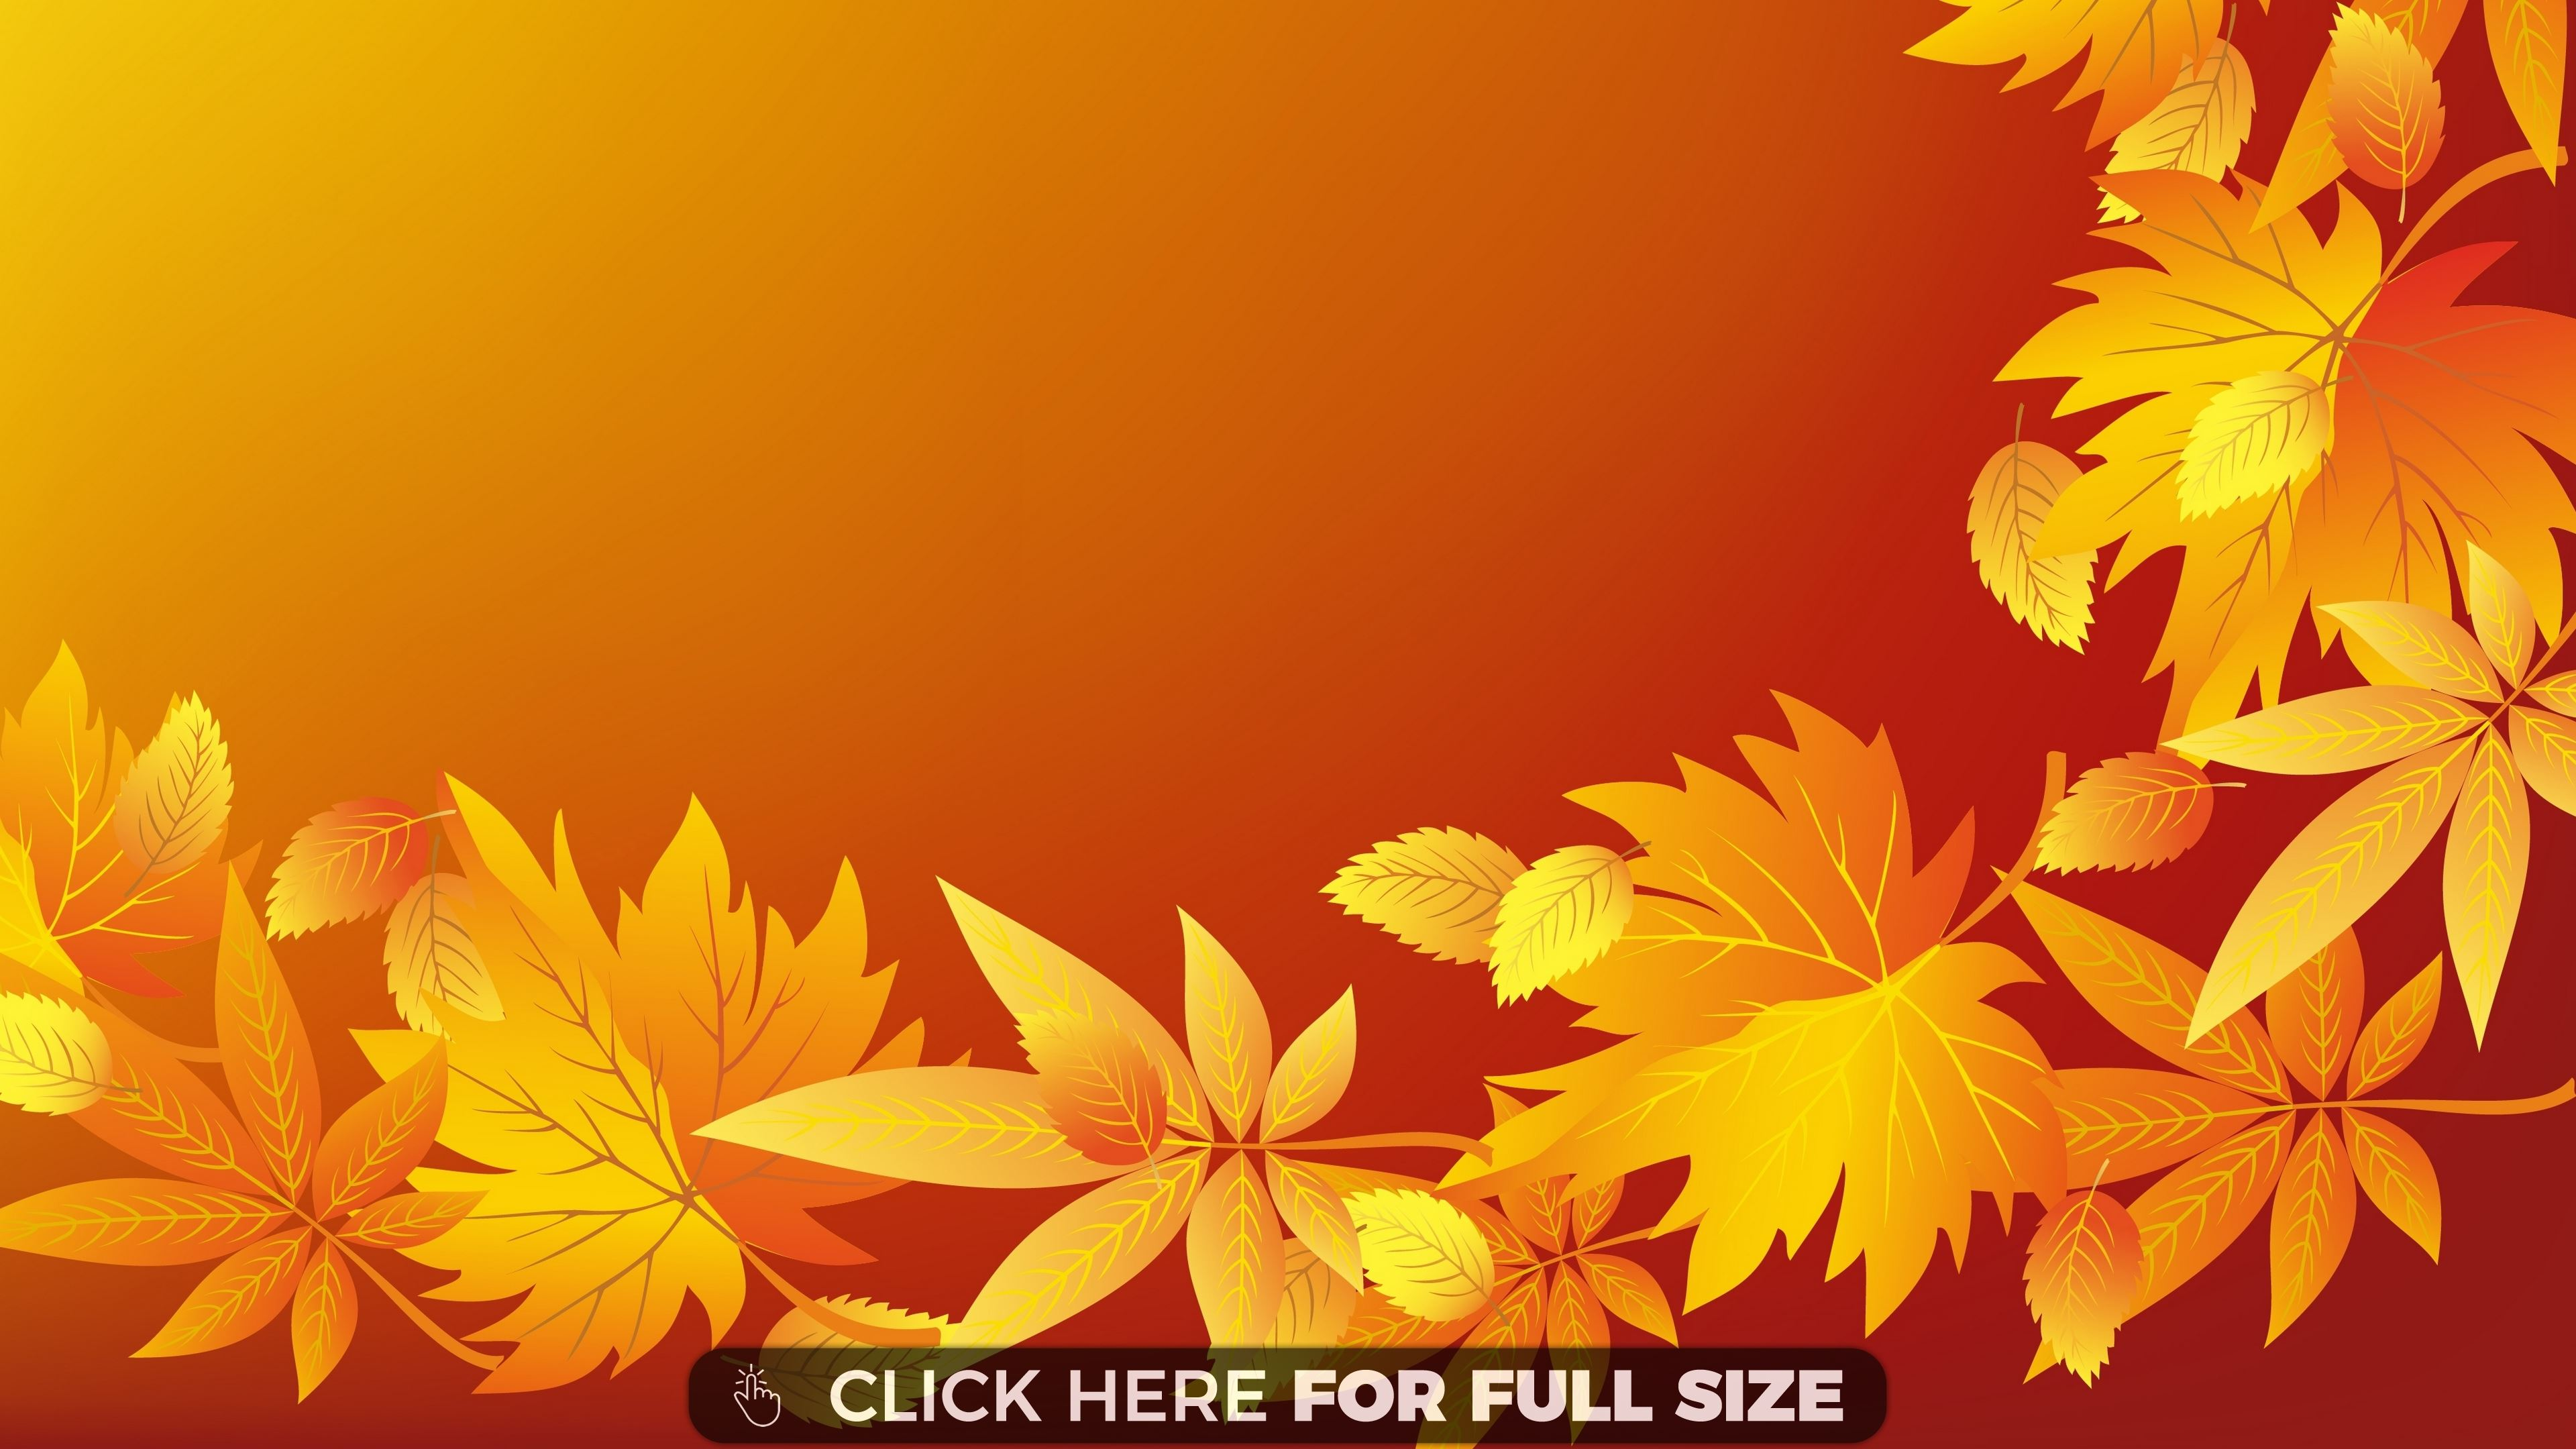 autumn wallpapers and desktop backgrounds up to 8K 3840x2160